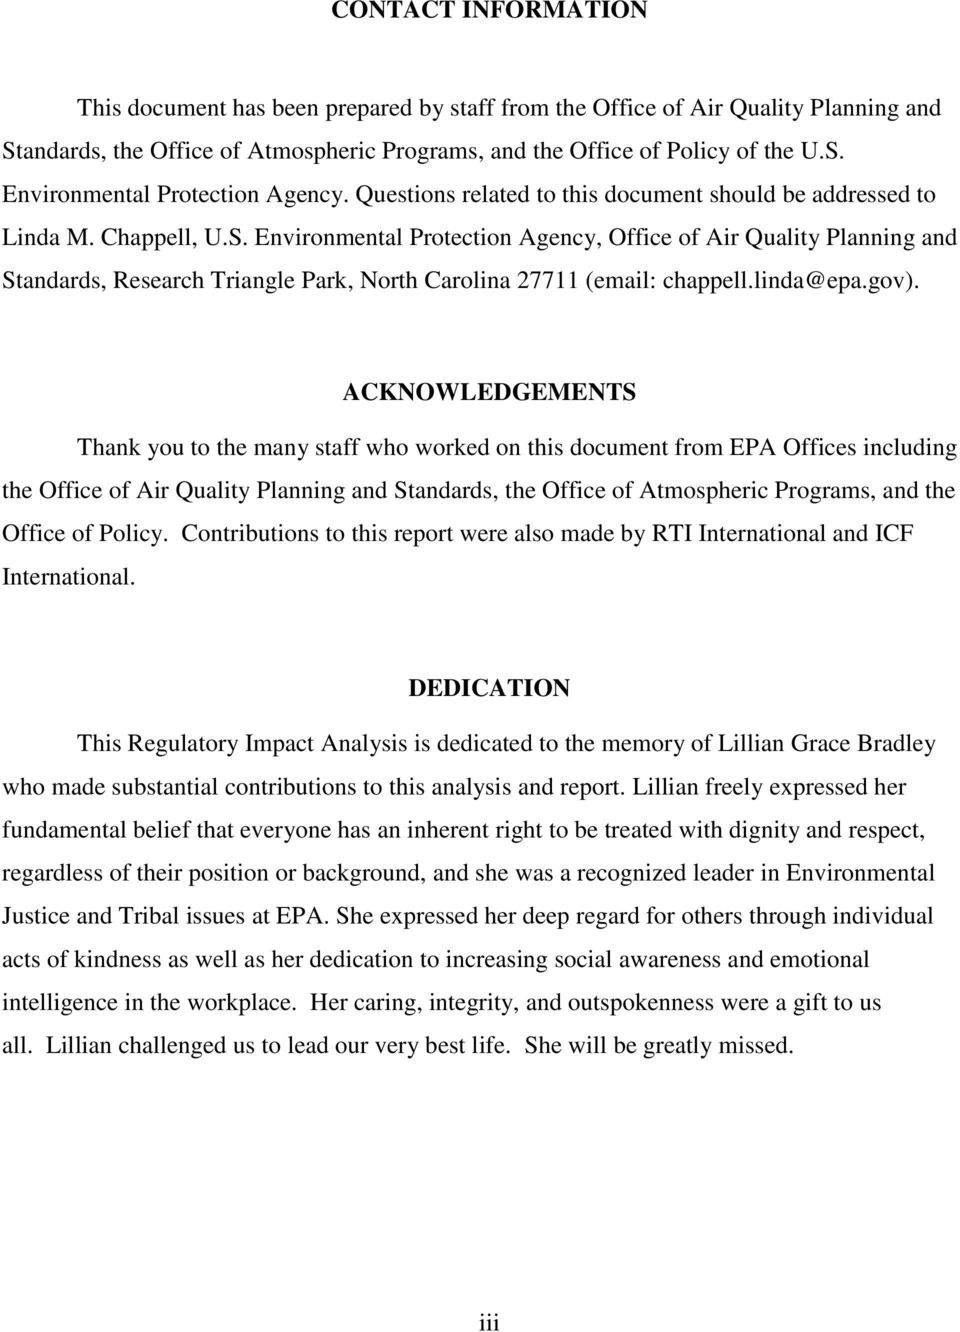 Environmental Protection Agency, Office of Air Quality Planning and Standards, Research Triangle Park, North Carolina 27711 (email: chappell.linda@epa.gov).